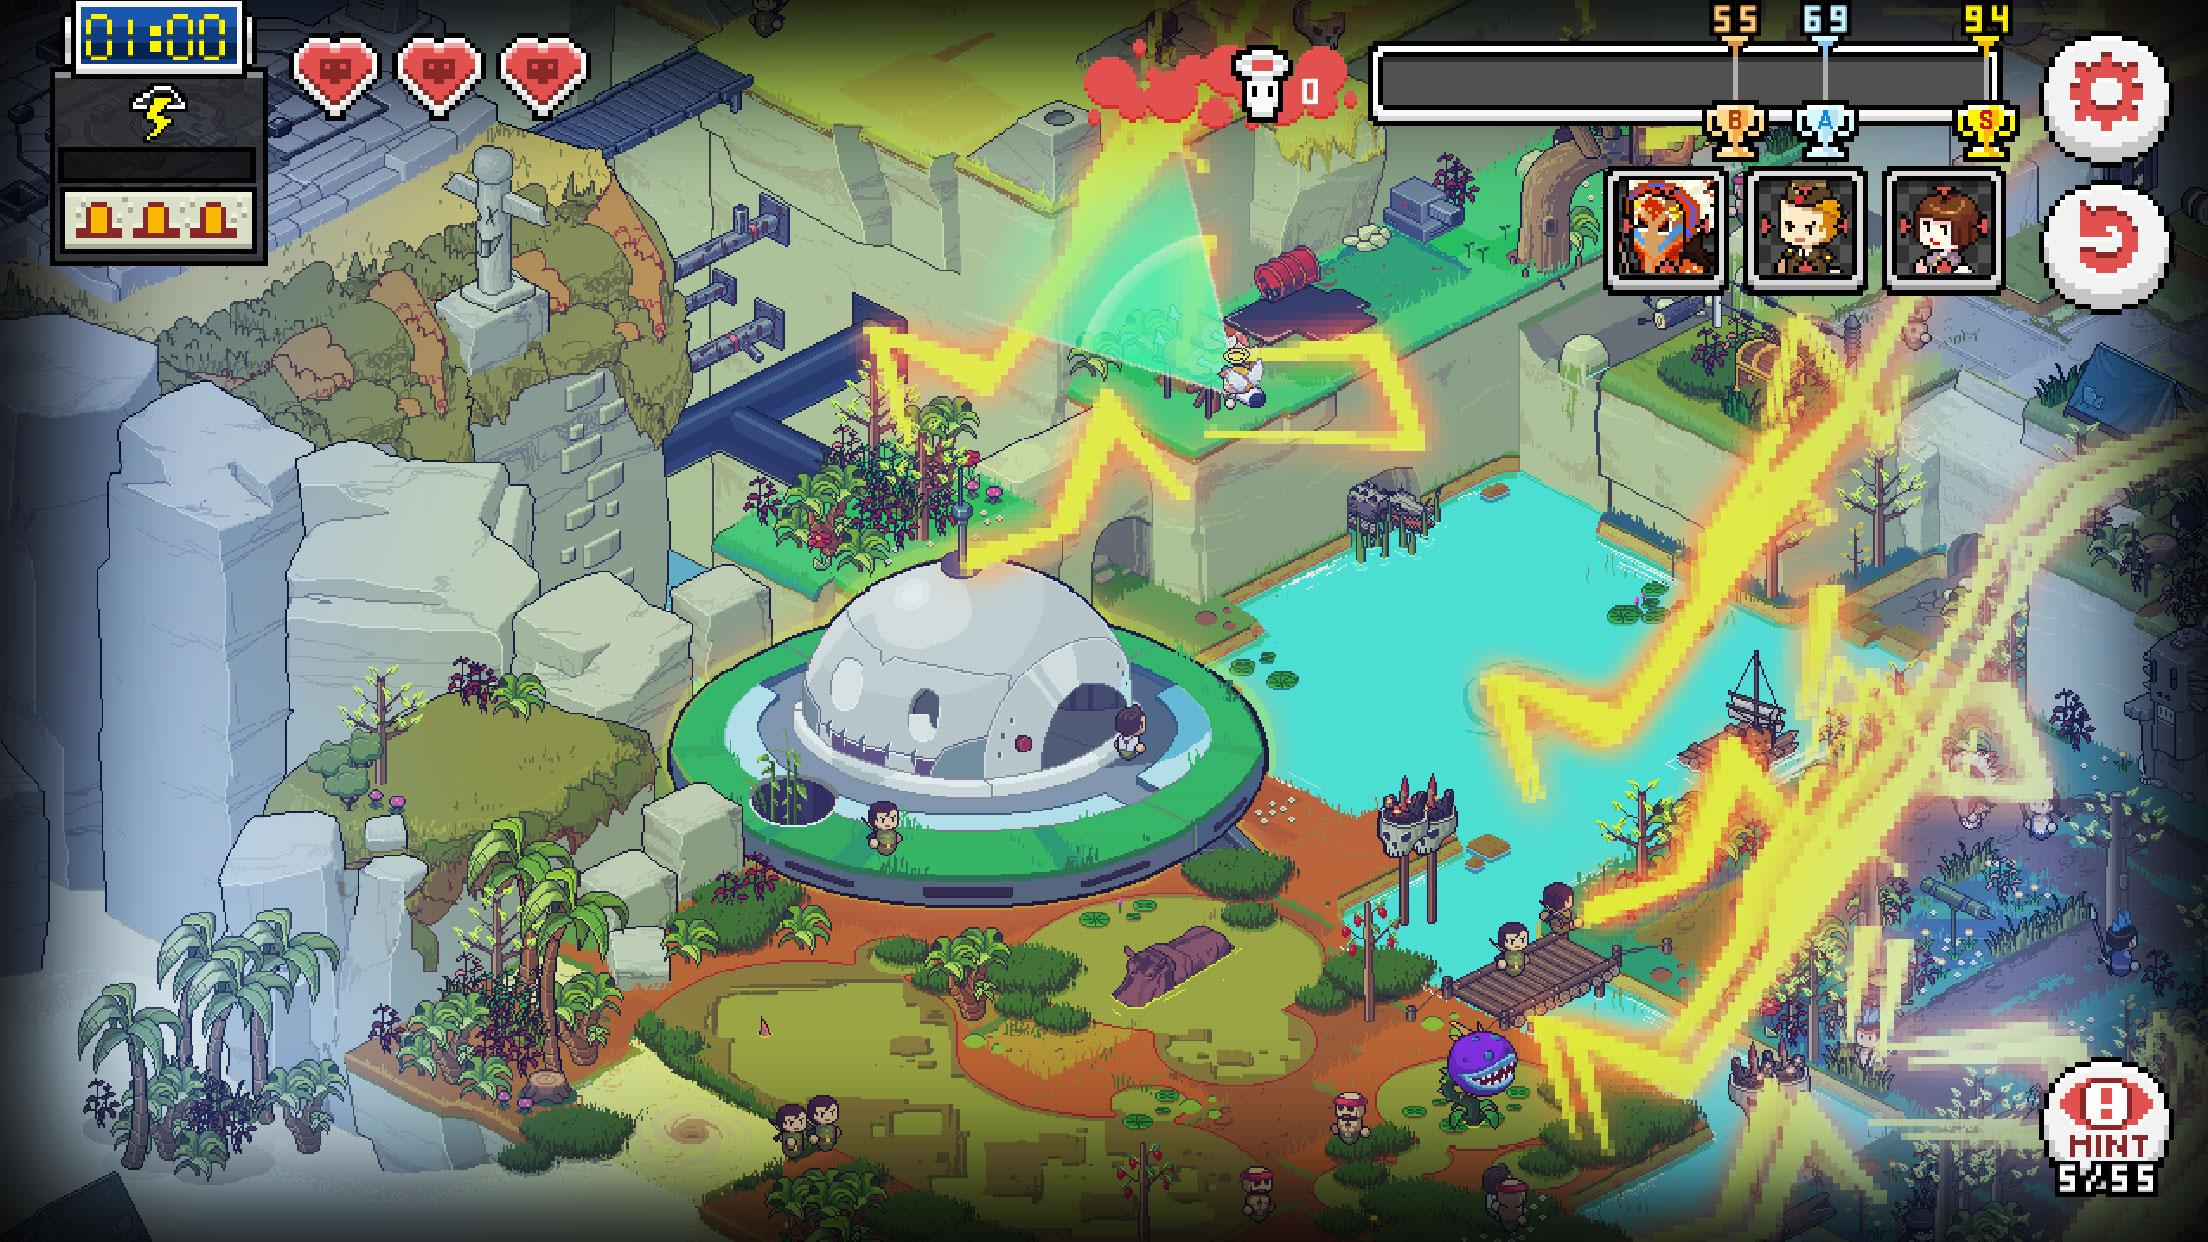 Death Coming has just landed on Android so it's time to reap puny, human souls